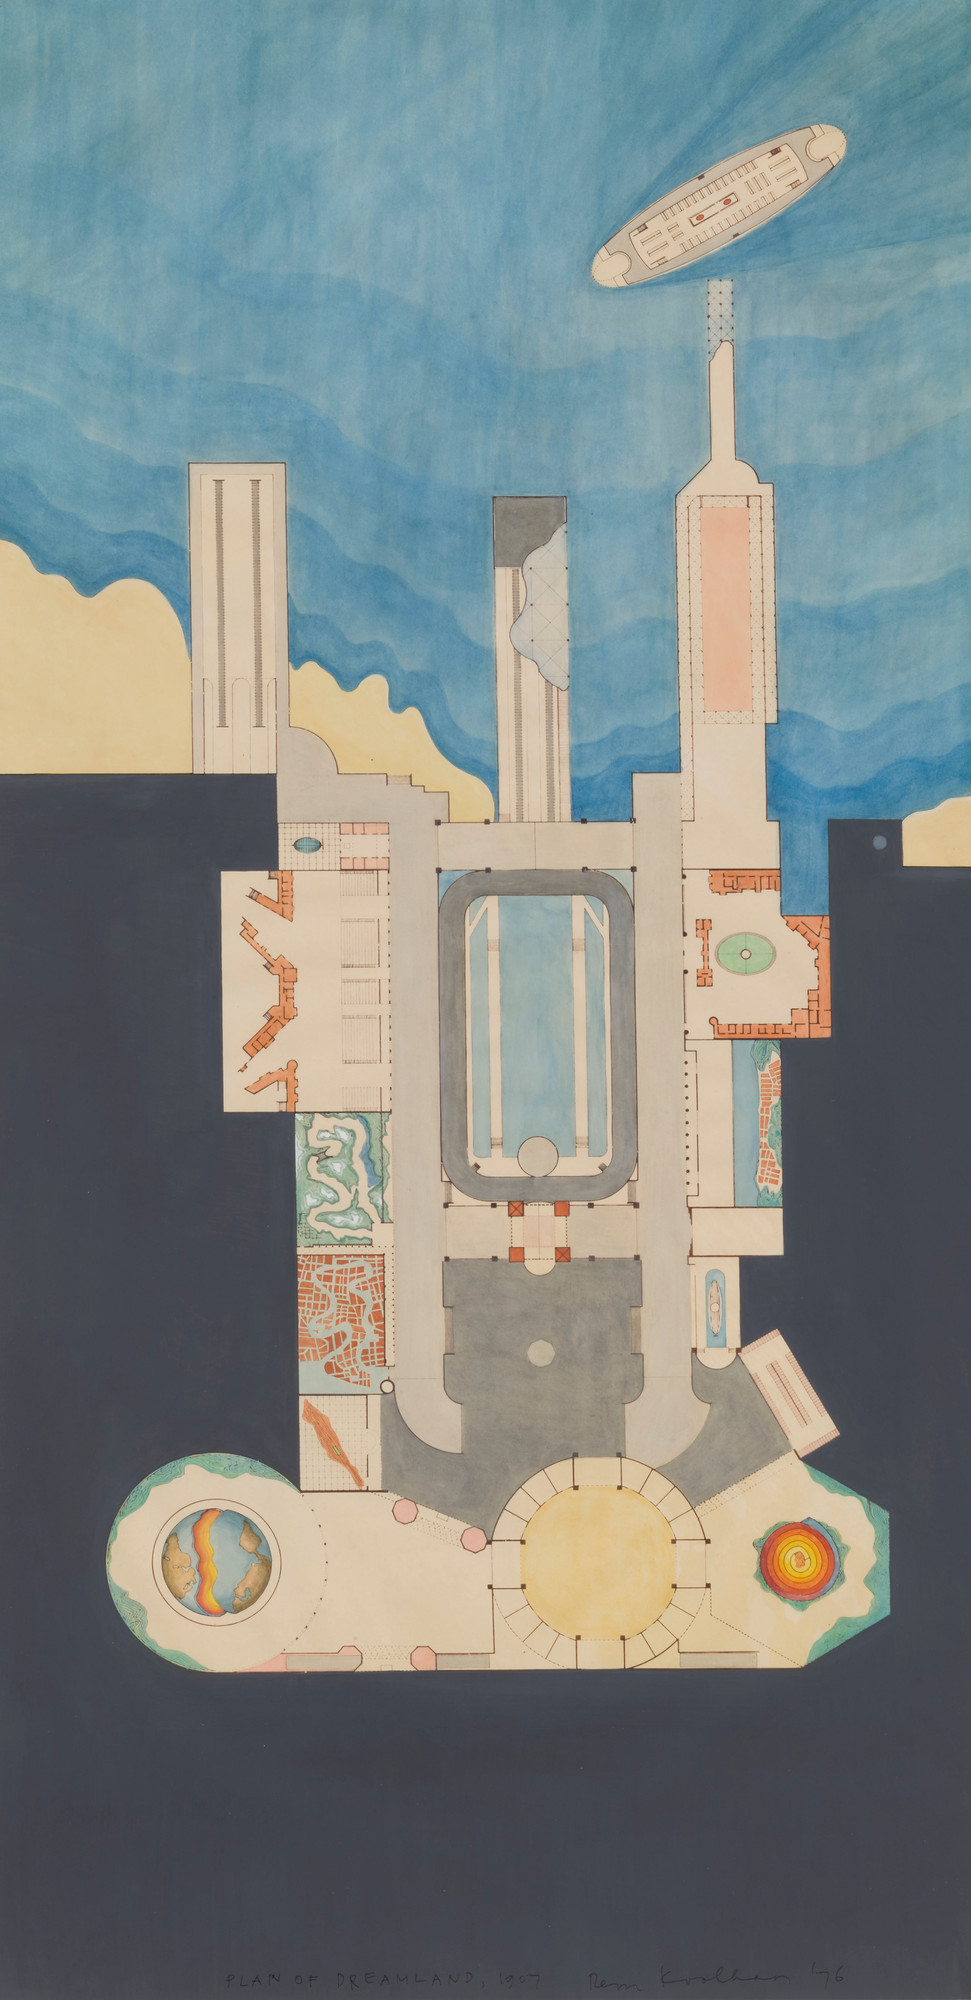 Rem Koolhaas. Plan of Dreamland. 1977. Watercolor and ink, 41 3⁄4 × 22″ (106 × 55.9 cm). Gift of Frederieke S. Taylor. © 2008 Rem Koolhaas